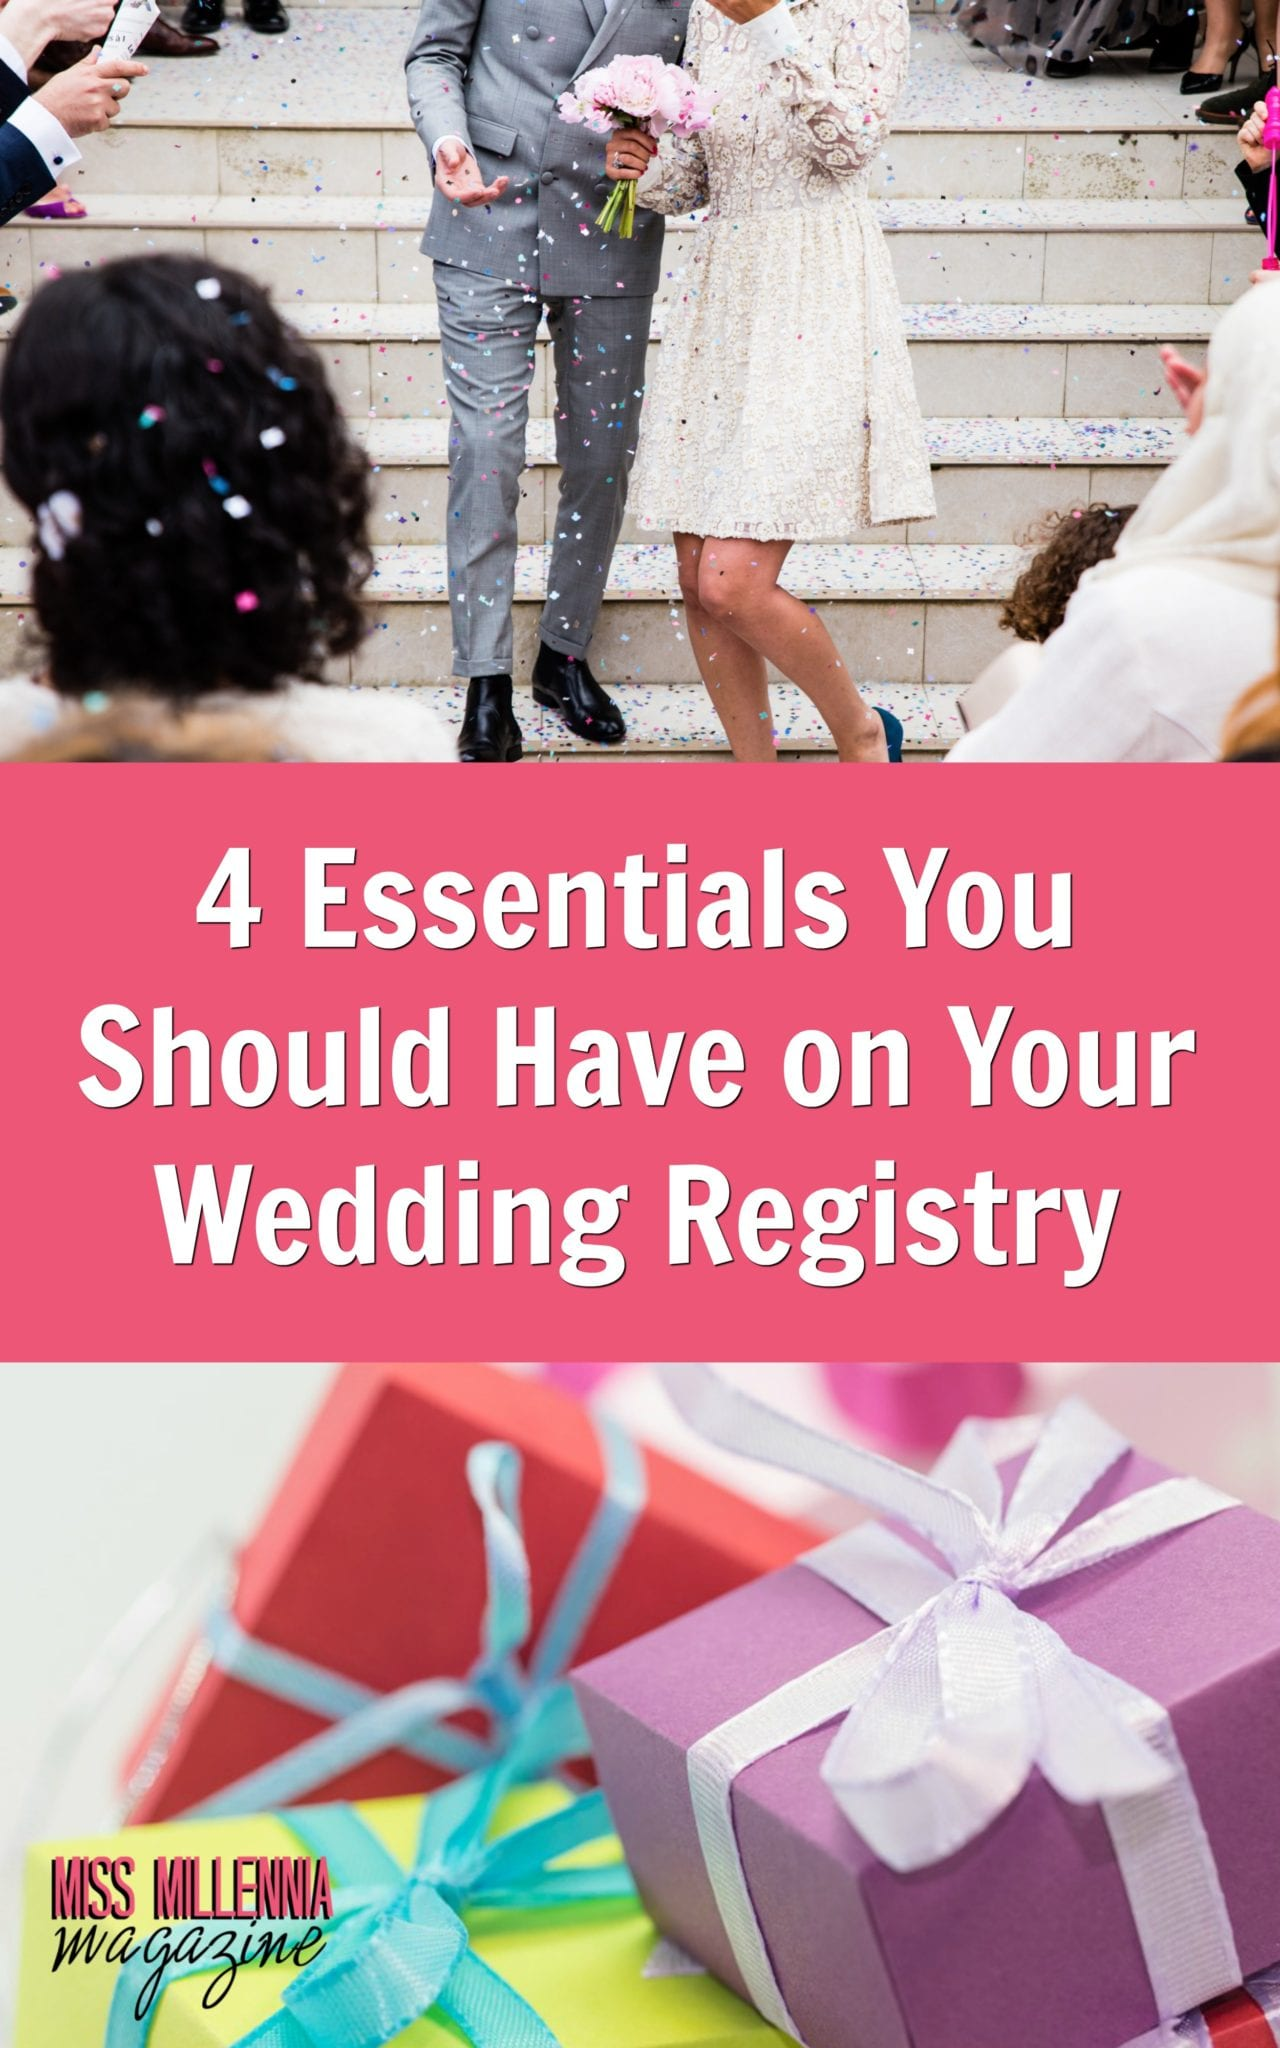 Here I want to share a few registry essentials you shouldn't forget when getting your list together.